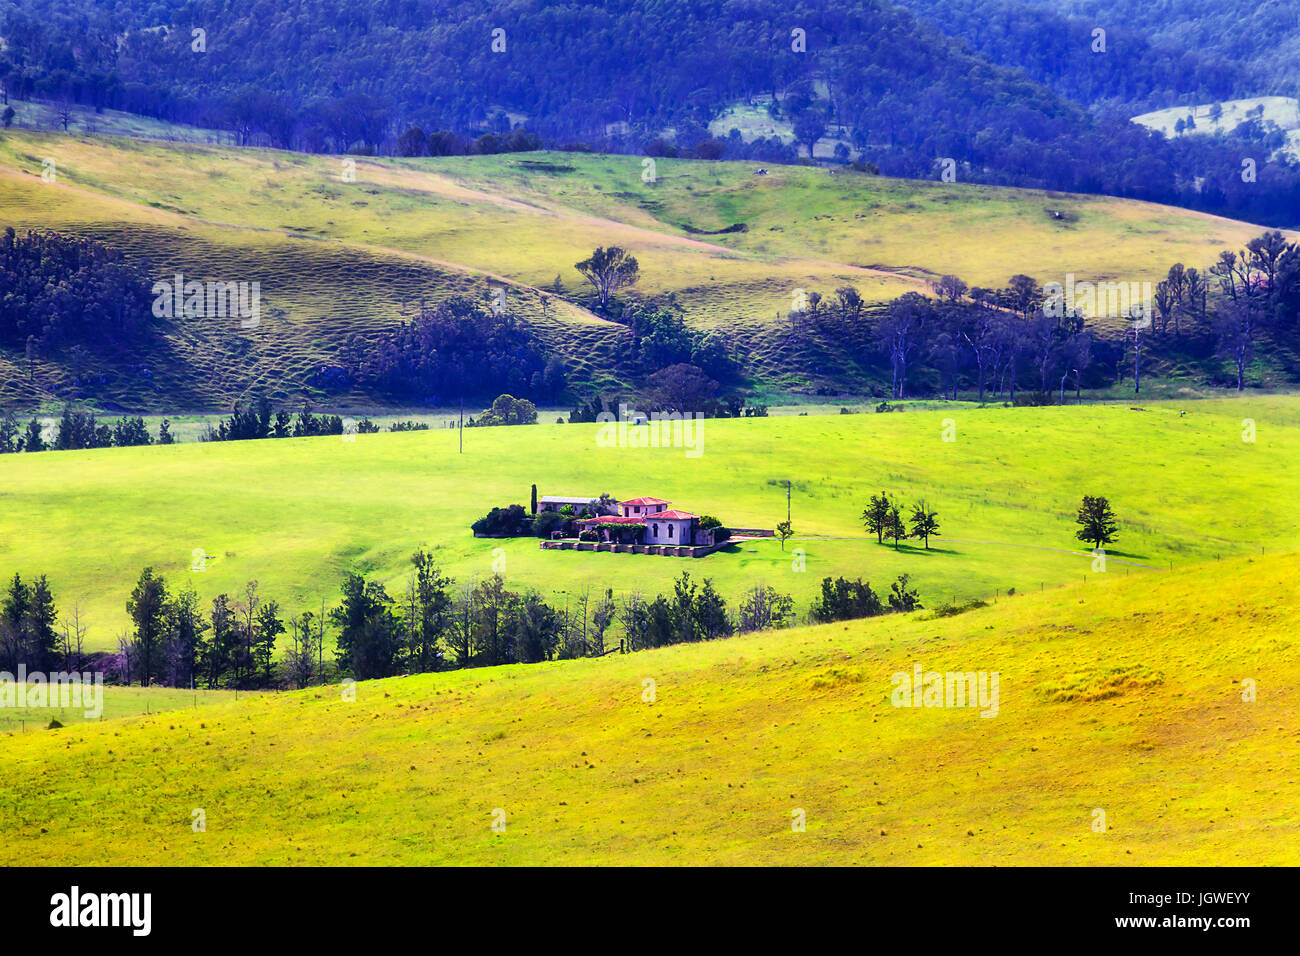 Remote agricultural developed farm to grow cattle in a middle of green grass pasture surrounded by hill ranges and - Stock Image